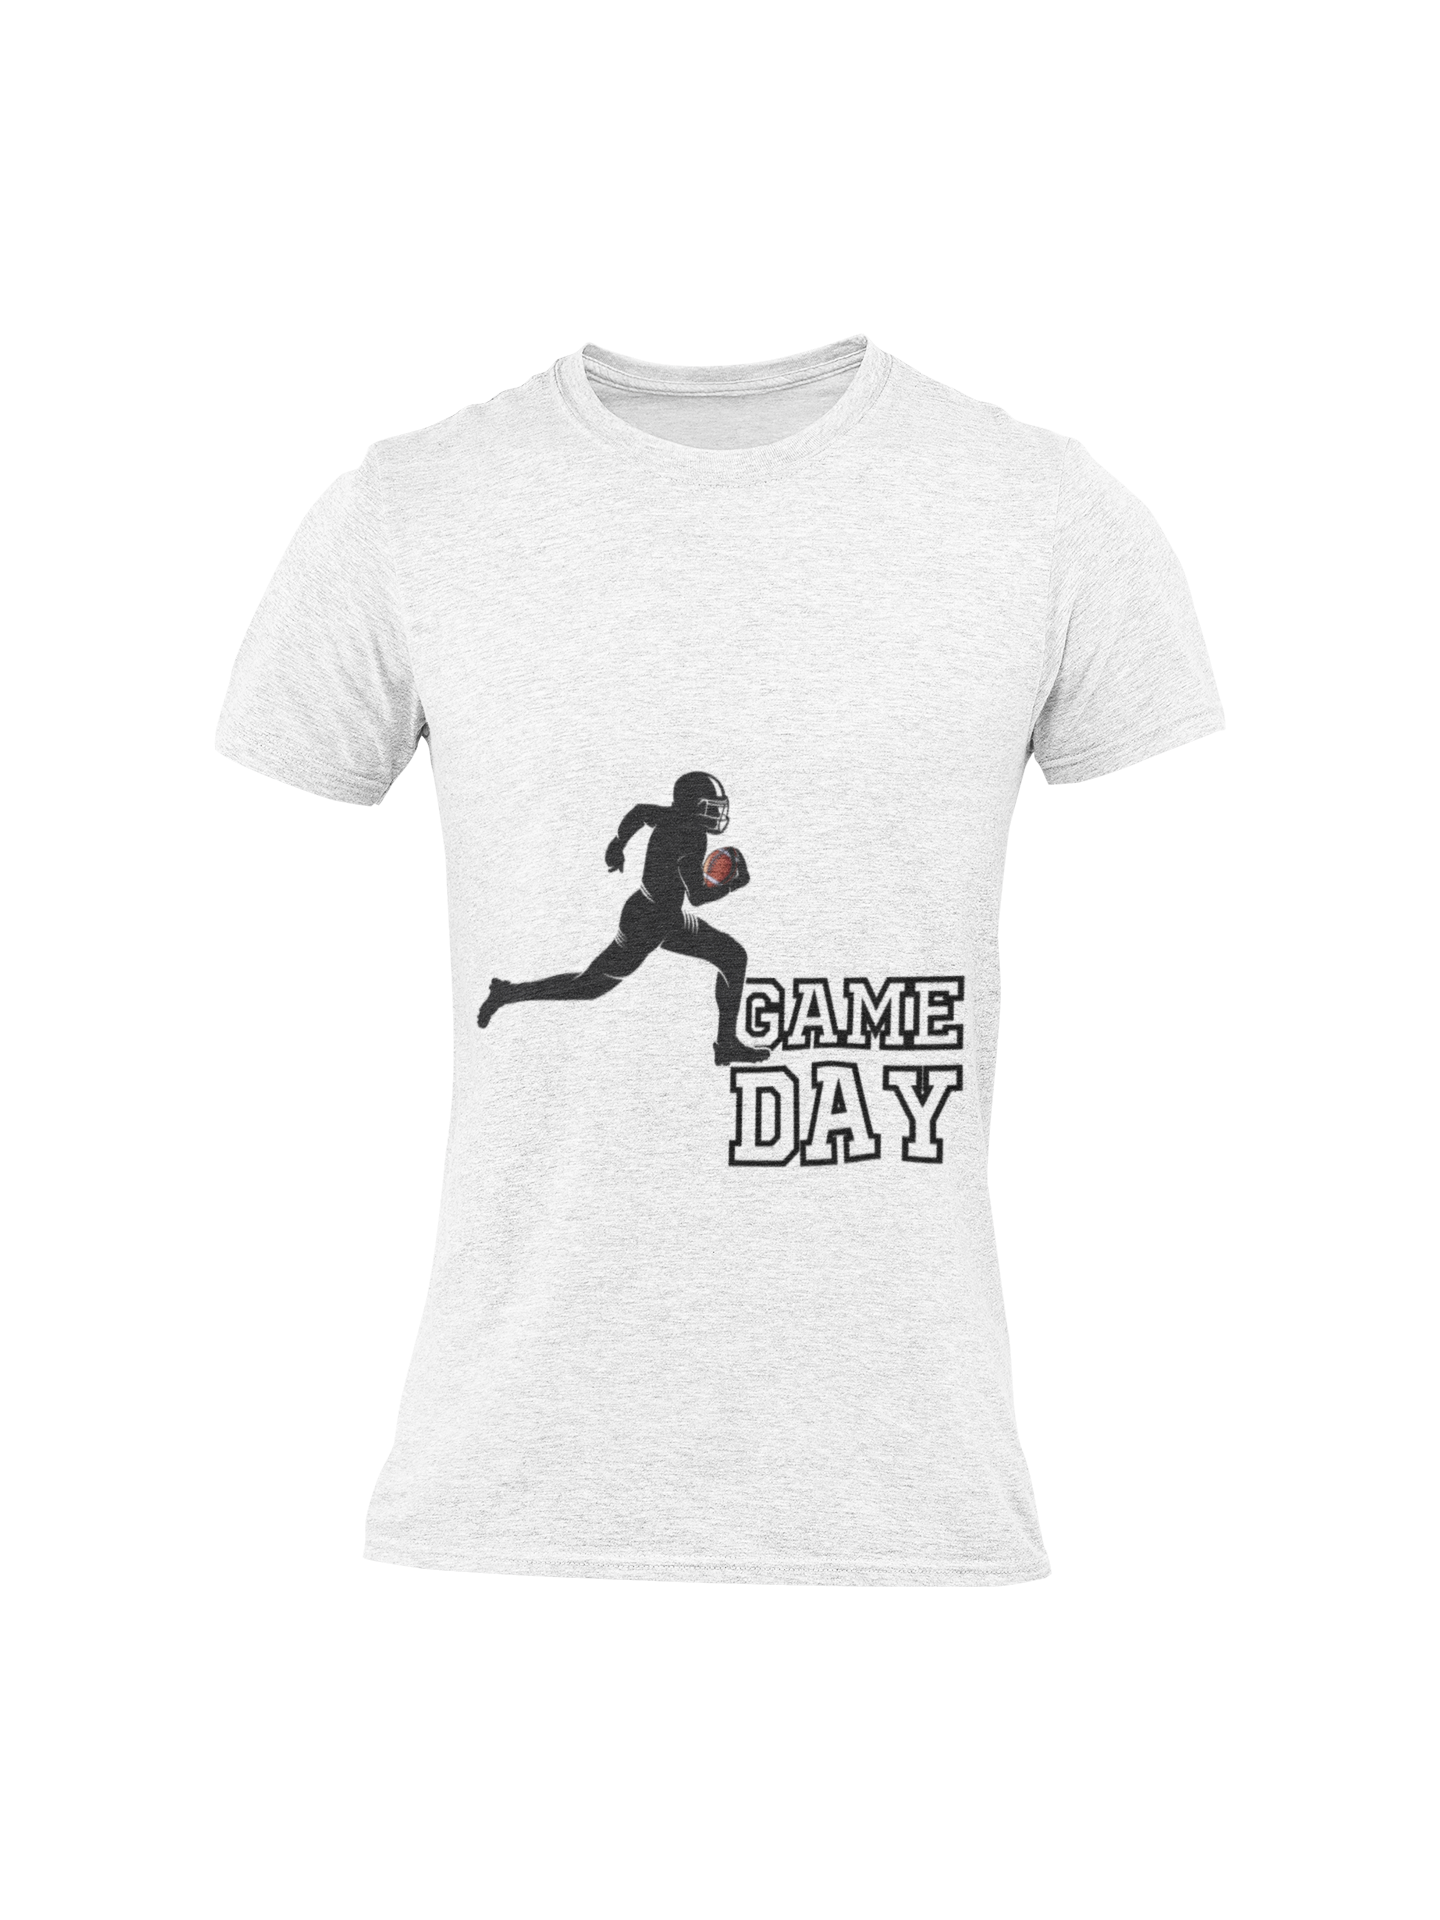 Short-Sleeve Game Day Football T-Shirt - ItsASportsVibe